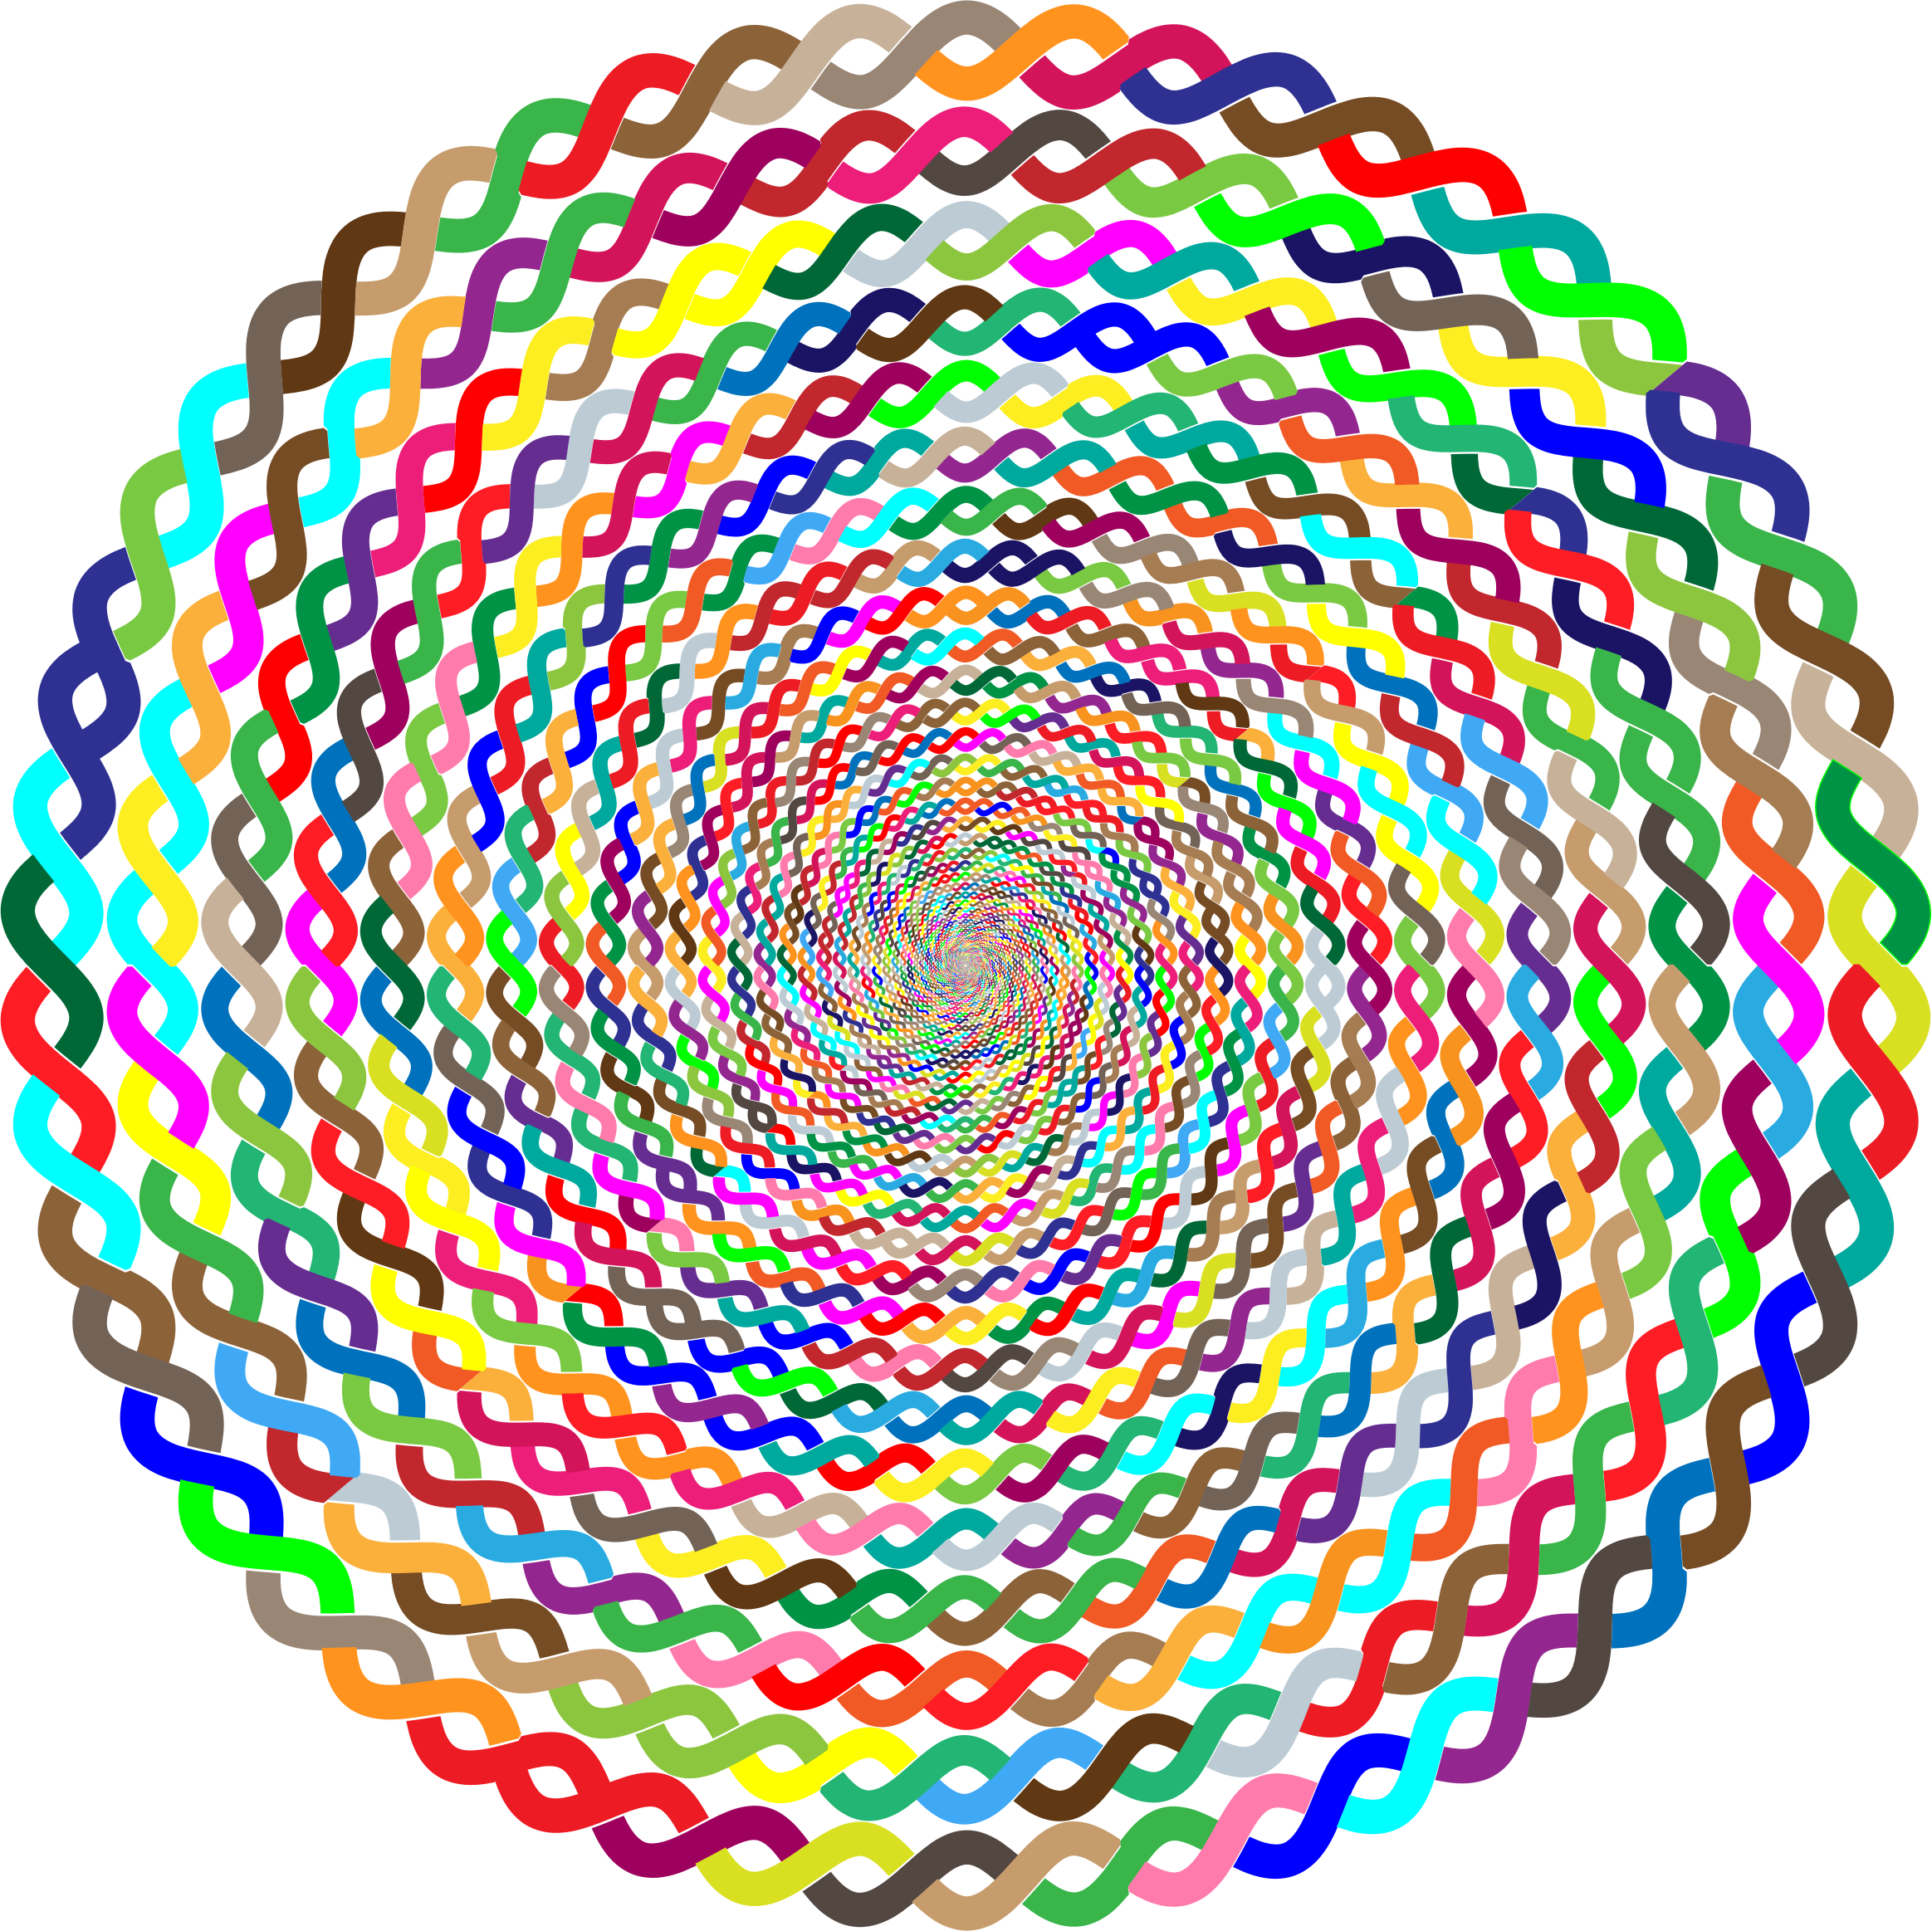 Prismatic Intertwined Circle Vortex No Background by GDJ